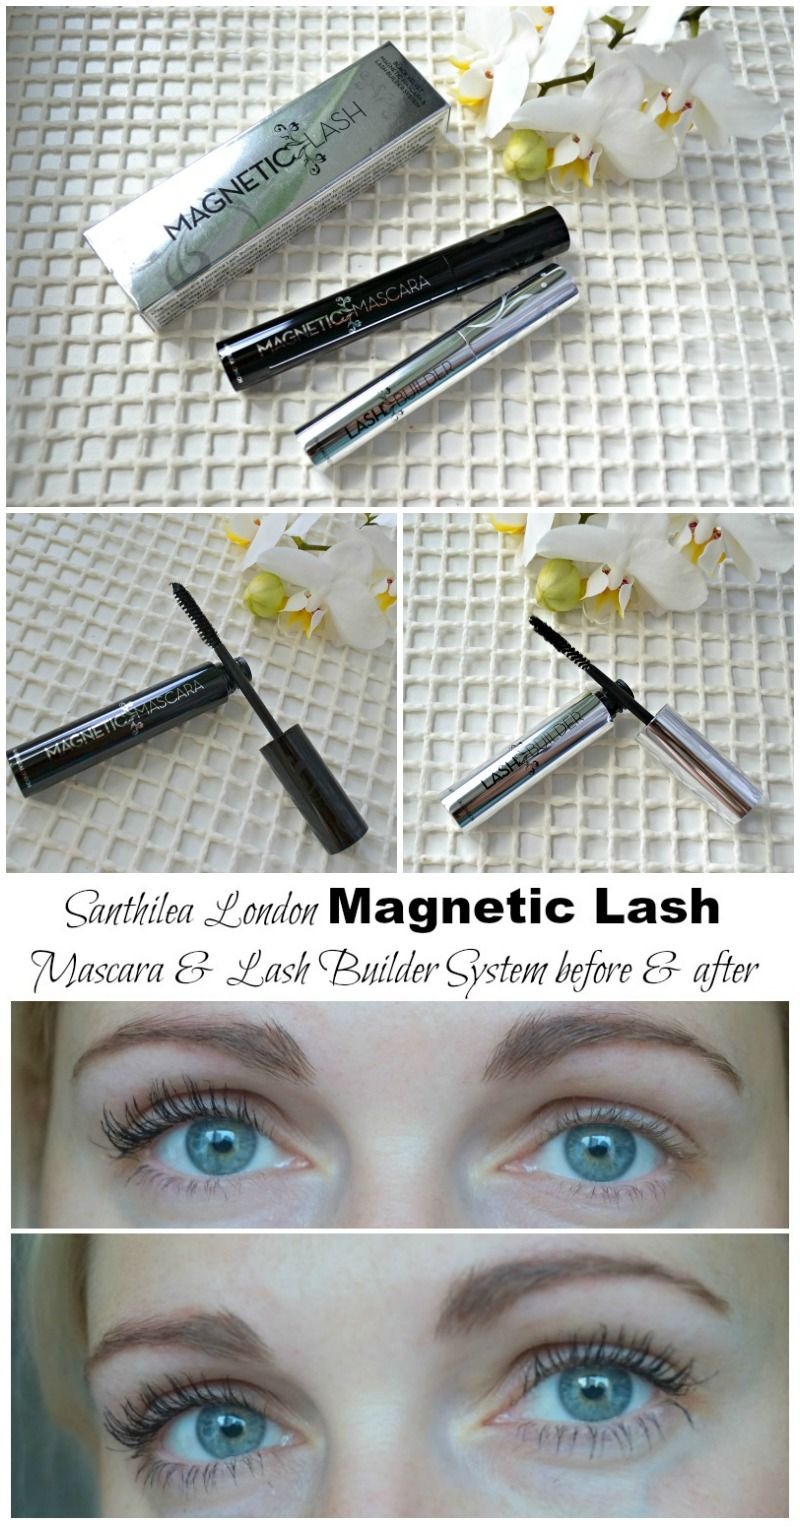 7ad3e121ad2 Santhilea London Magnetic Lash Mascara & Lash Builder System review. Before  and after photos. How to use Magentic Lash mascara & Lash Builder kit. via  @ ...